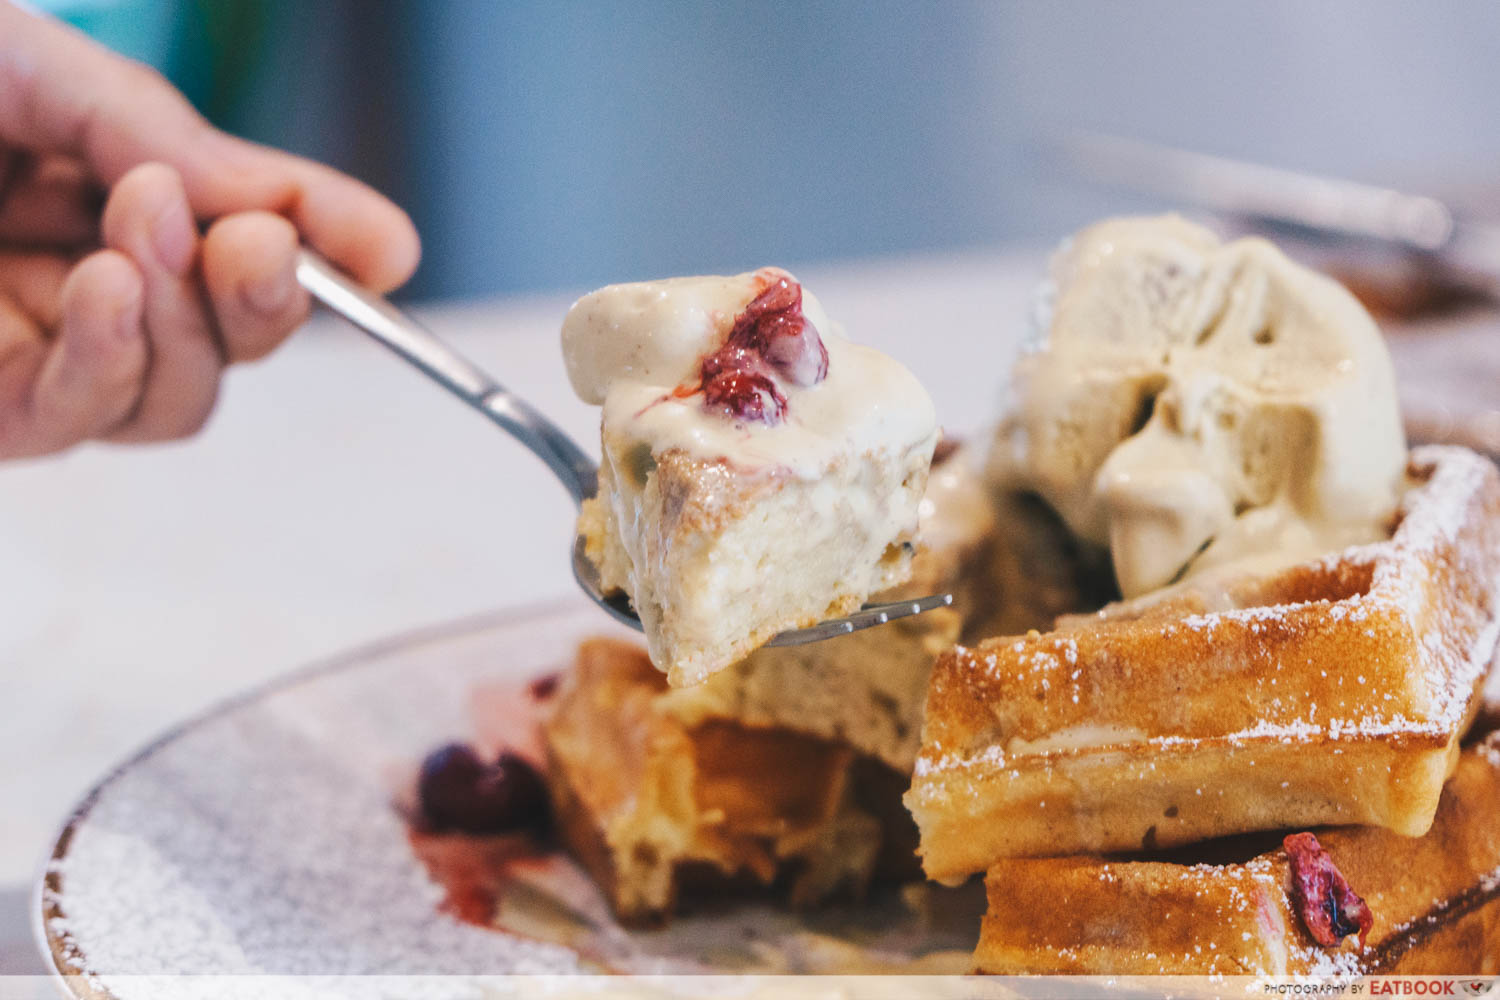 Roasted Pistachio with Waffles